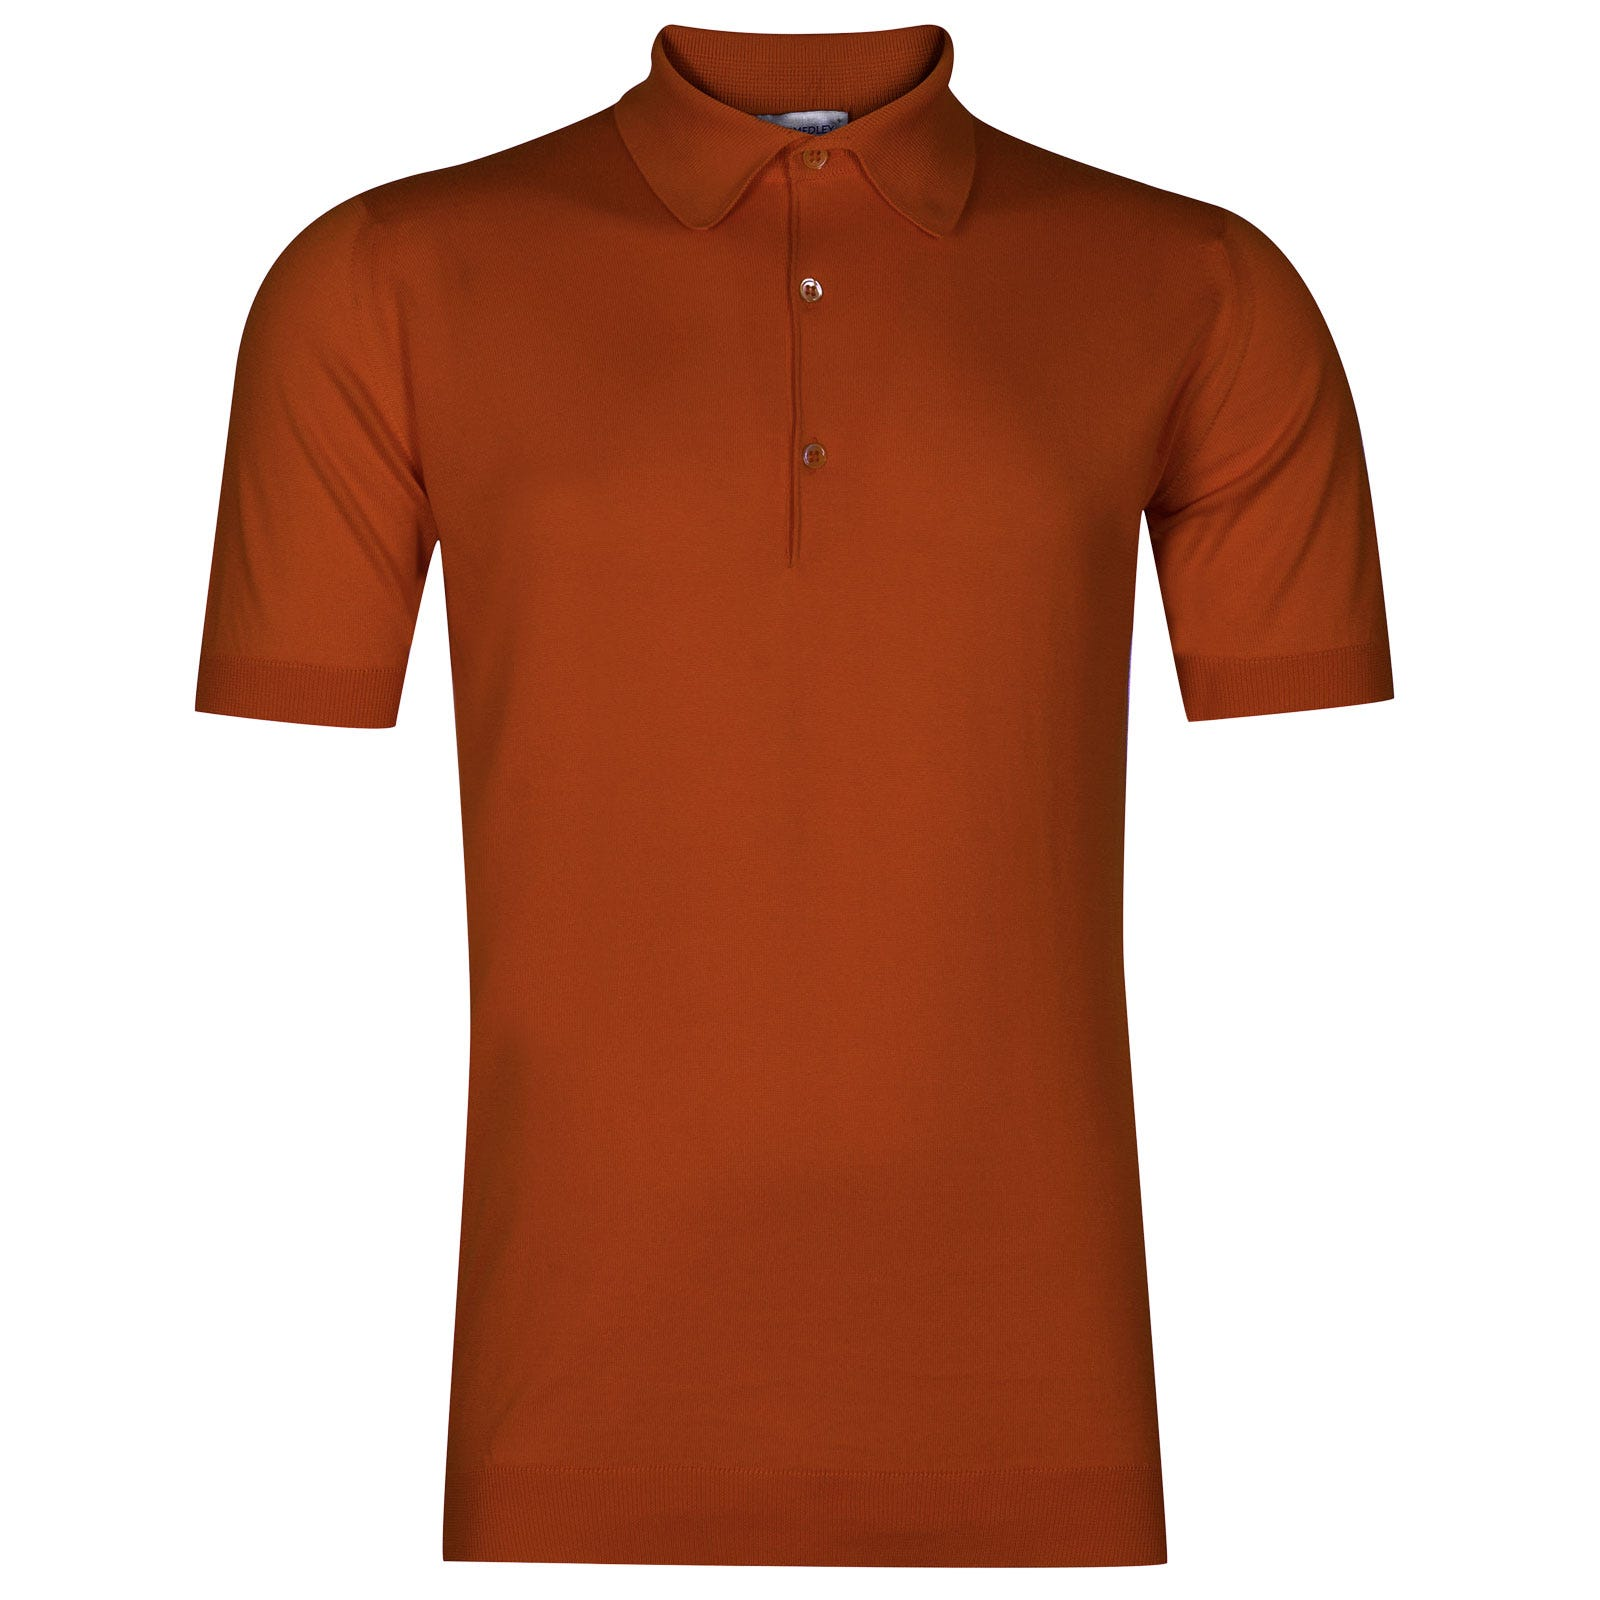 John Smedley adrian Sea Island Cotton Shirt in Flare Orange-L